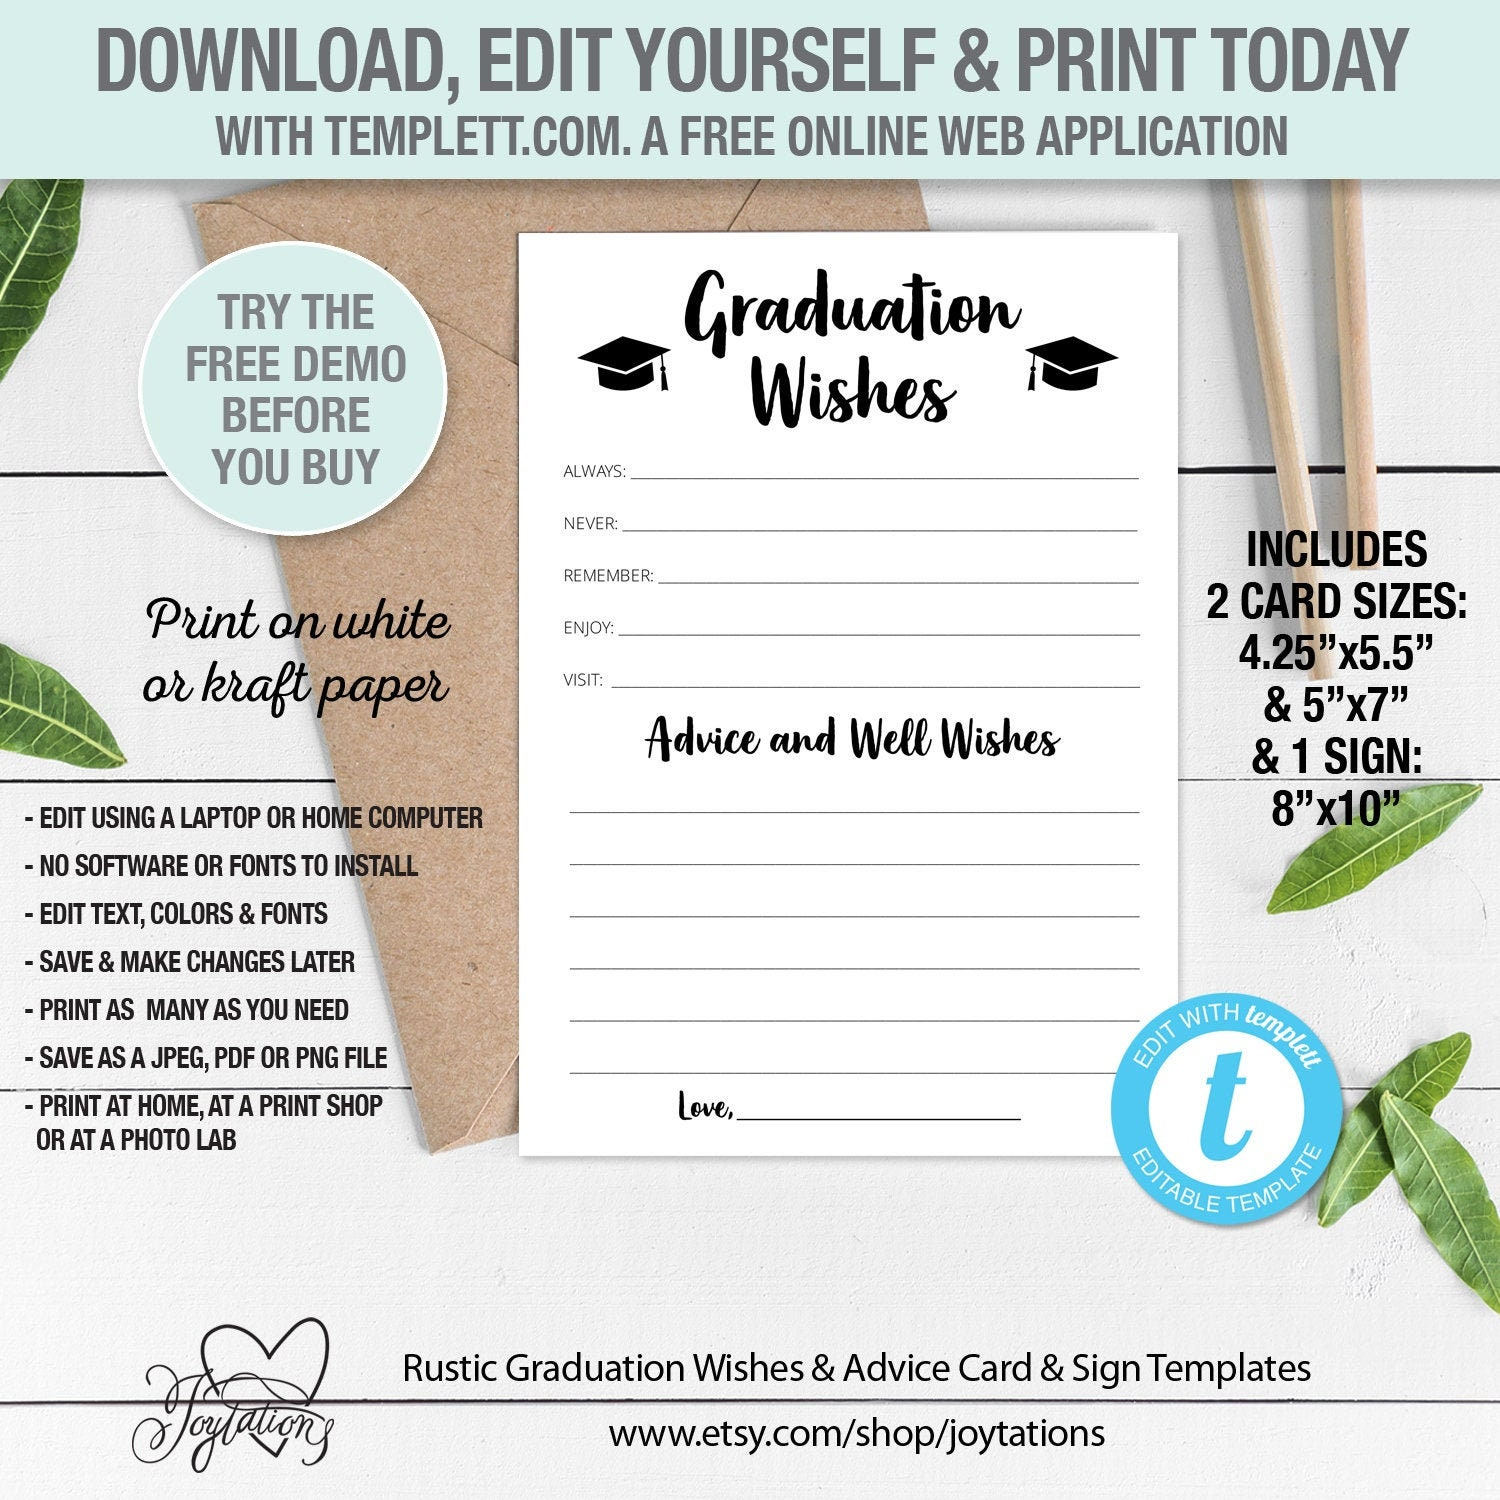 Graduation Wishes Advice And Well Wishes Card And Sign Etsy